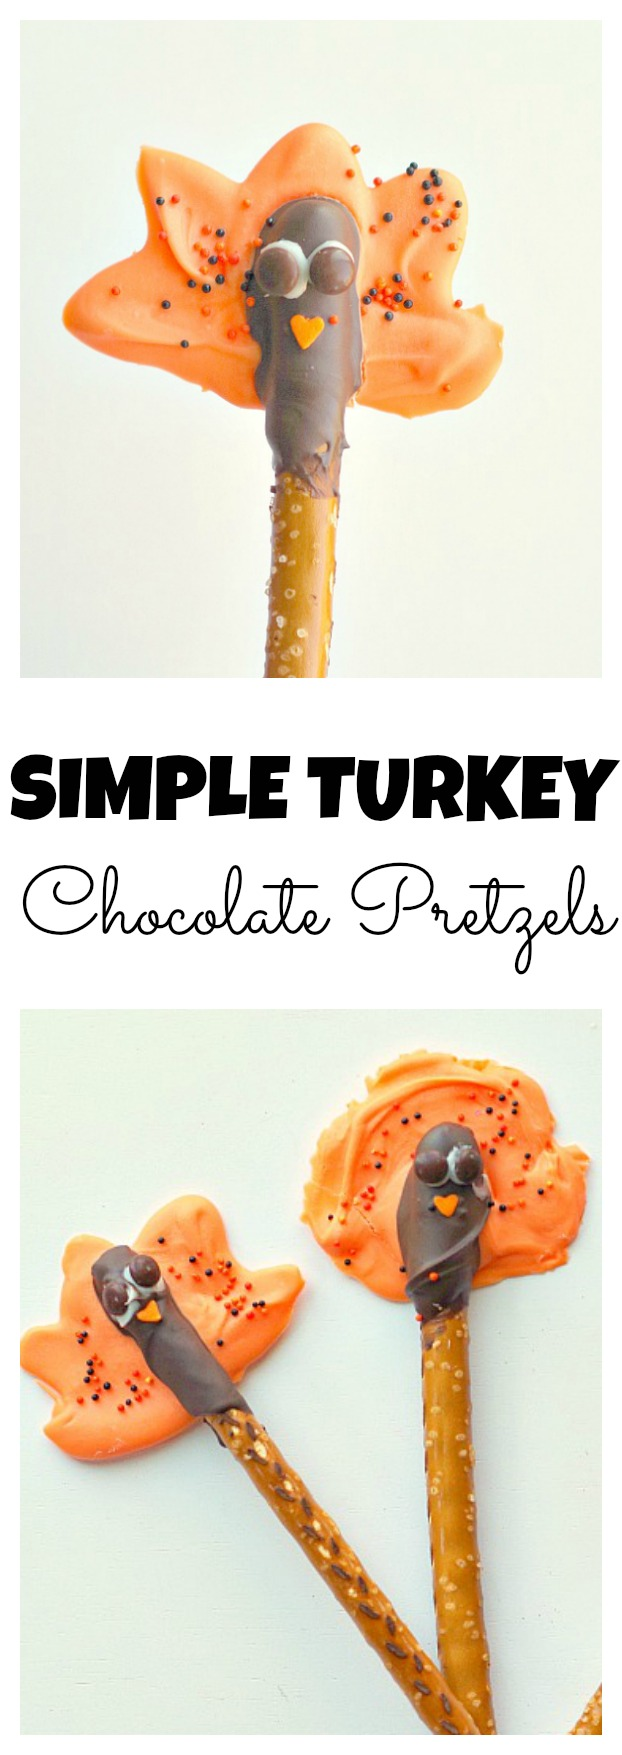 Simple Turkey Chocolate Pretzels